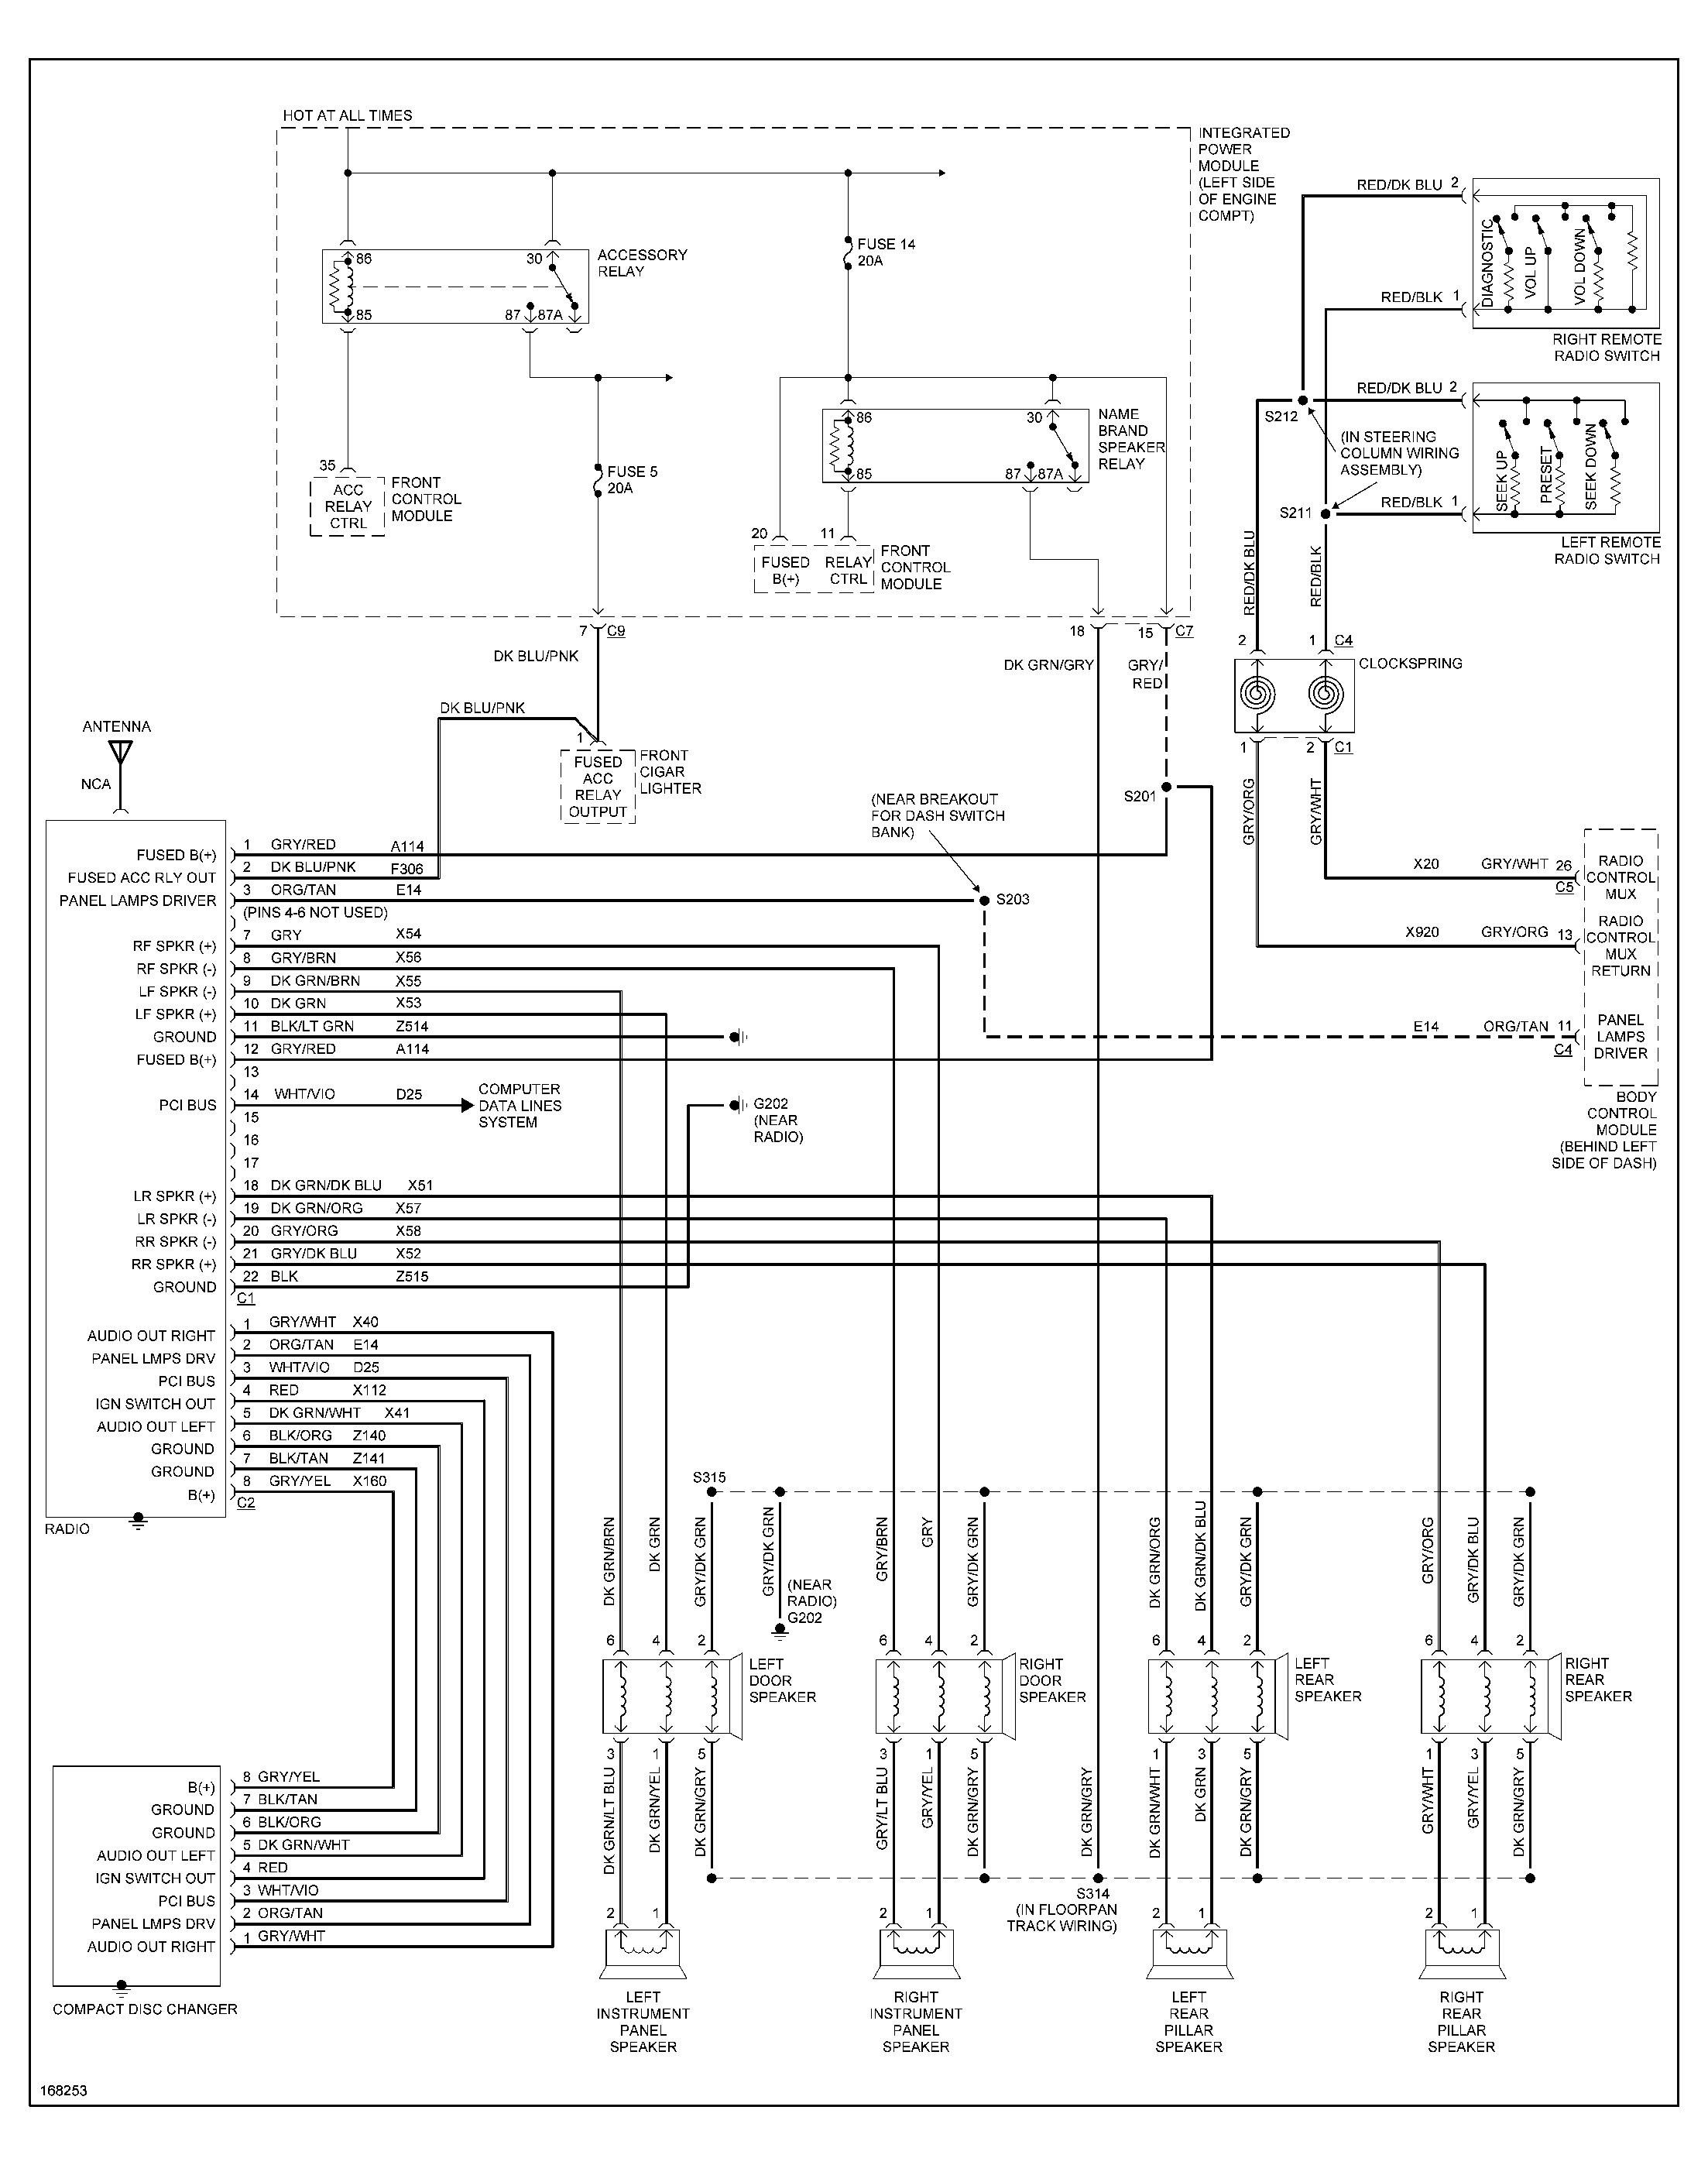 Dodge Caravan Speaker Wiring Diagram - Heating Only Thermostat Wiring  Diagram for Wiring Diagram SchematicsWiring Diagram Schematics